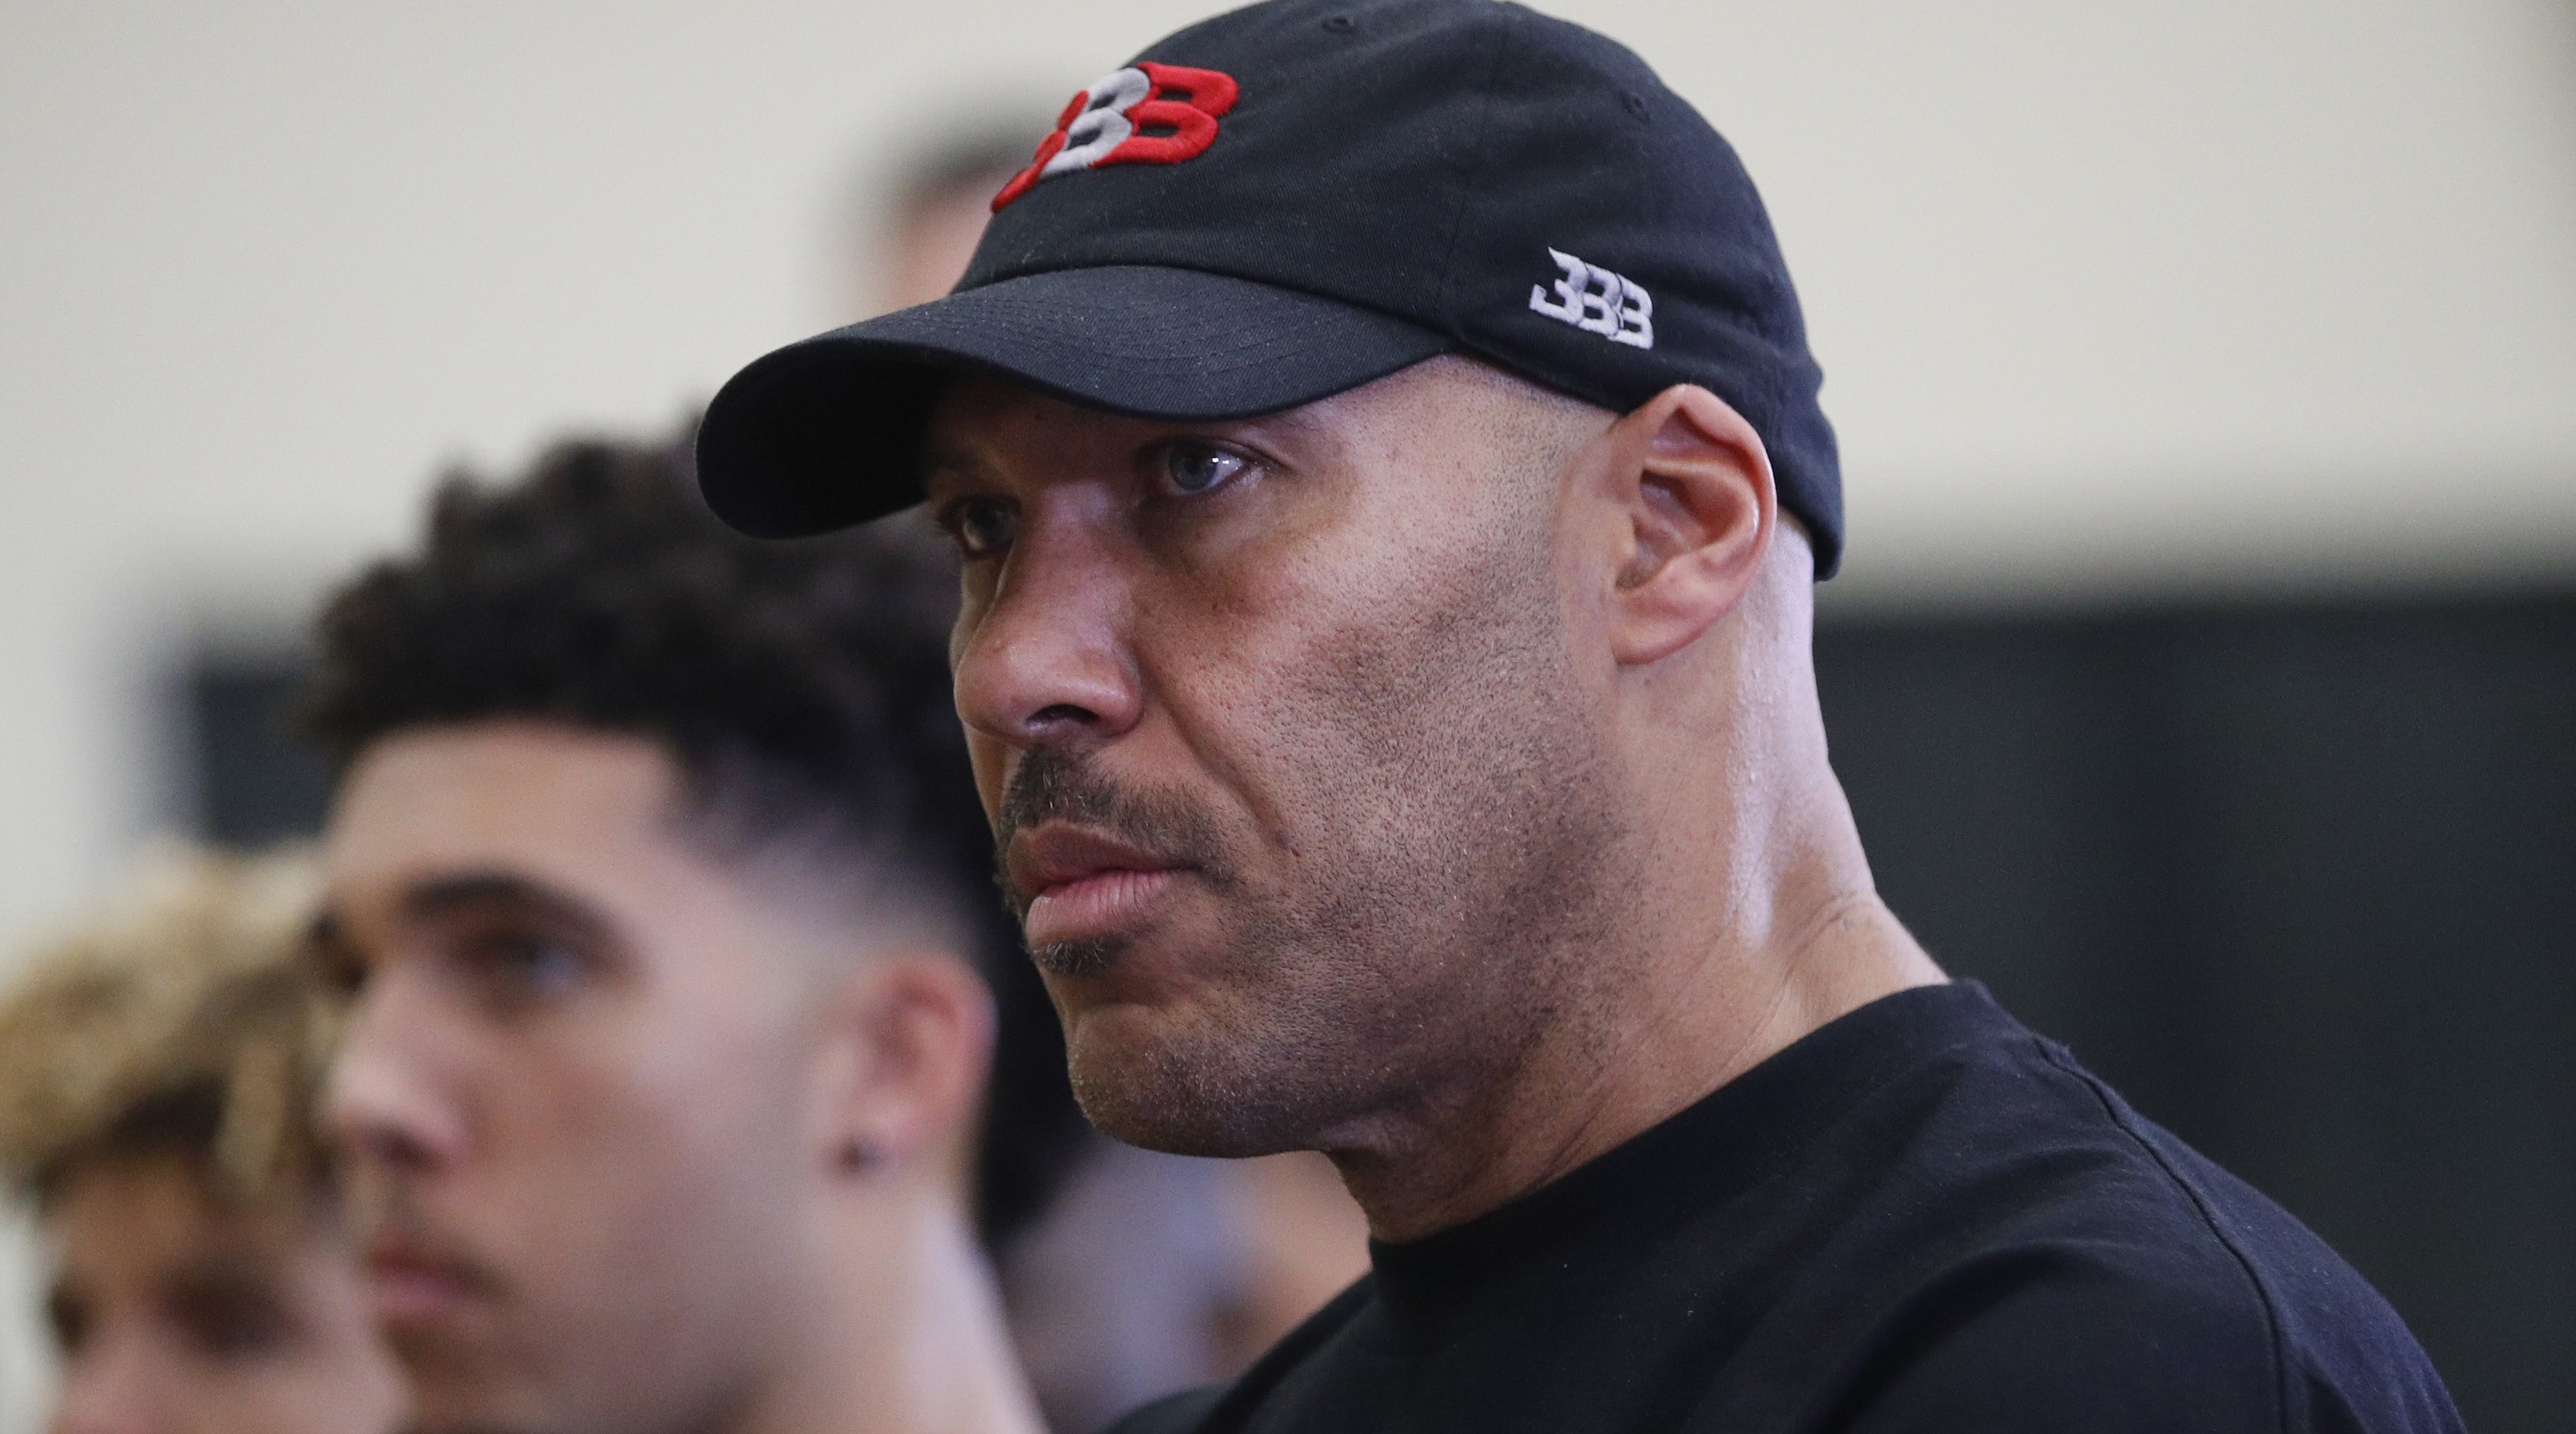 LaVar Ball's dad says his son could beat MJ one-on-one